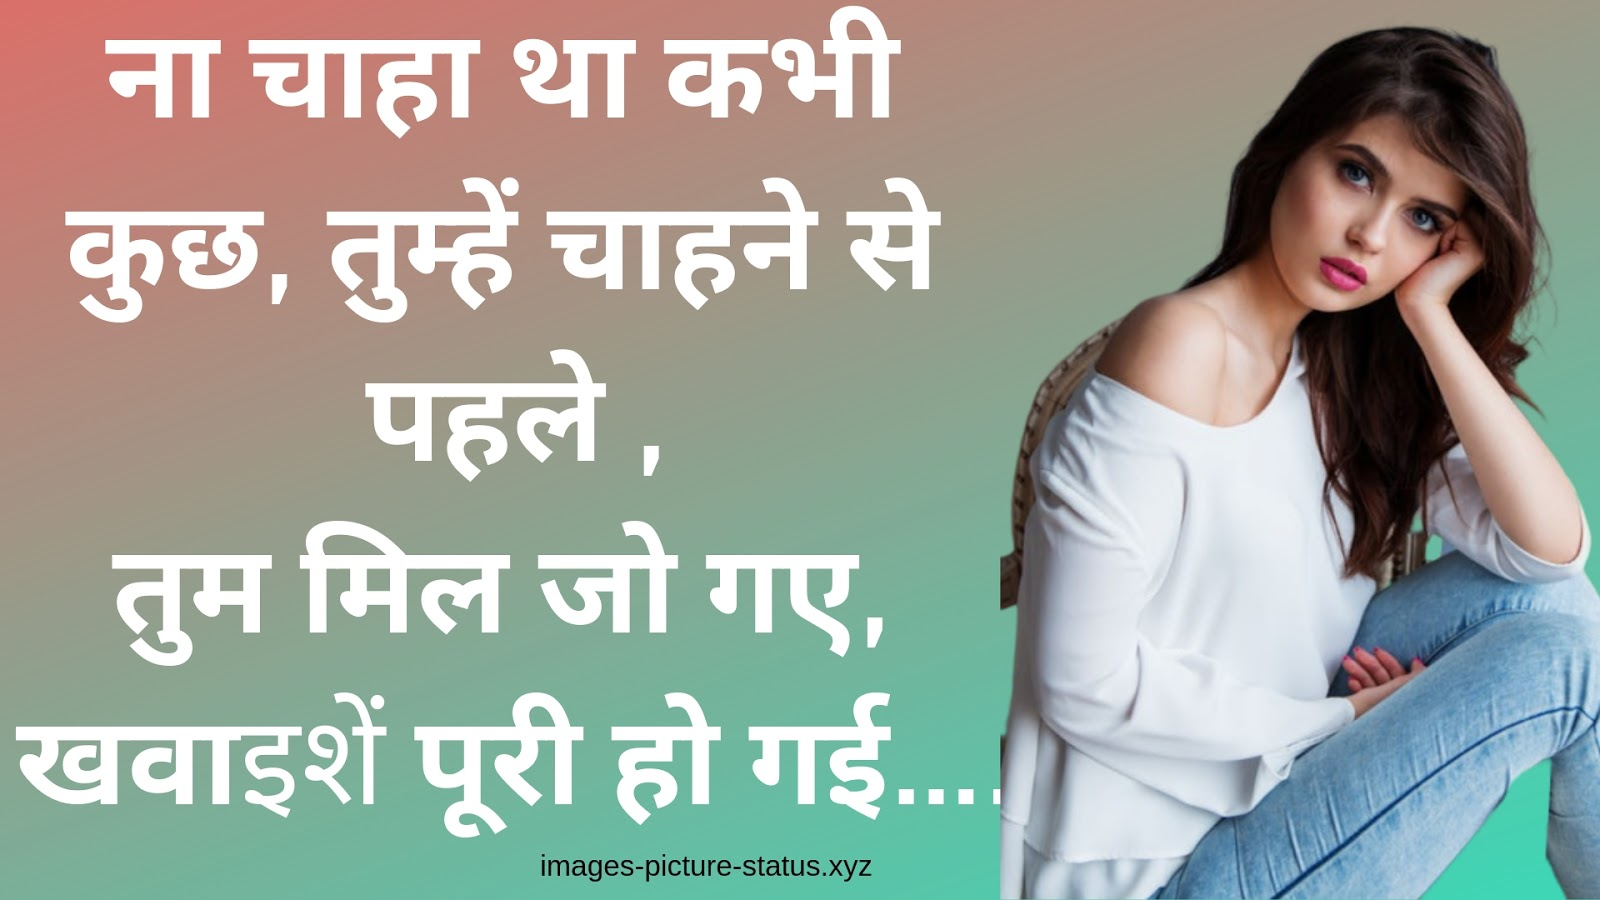 Top 10 Best Hindi Love Quotes images in 2019 | Hindi Love SMS